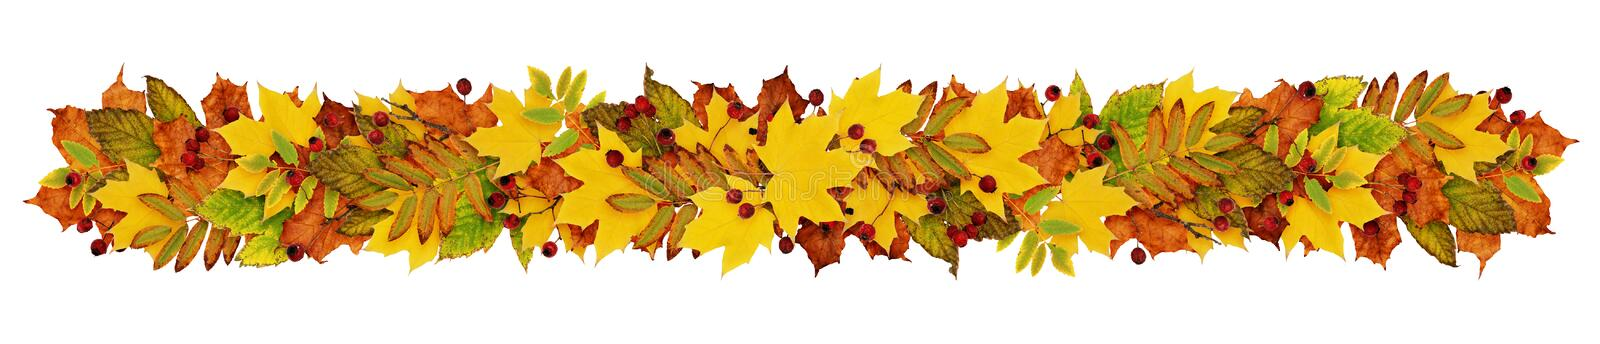 Autumn garland fron colorful leaves and berries stock illustration